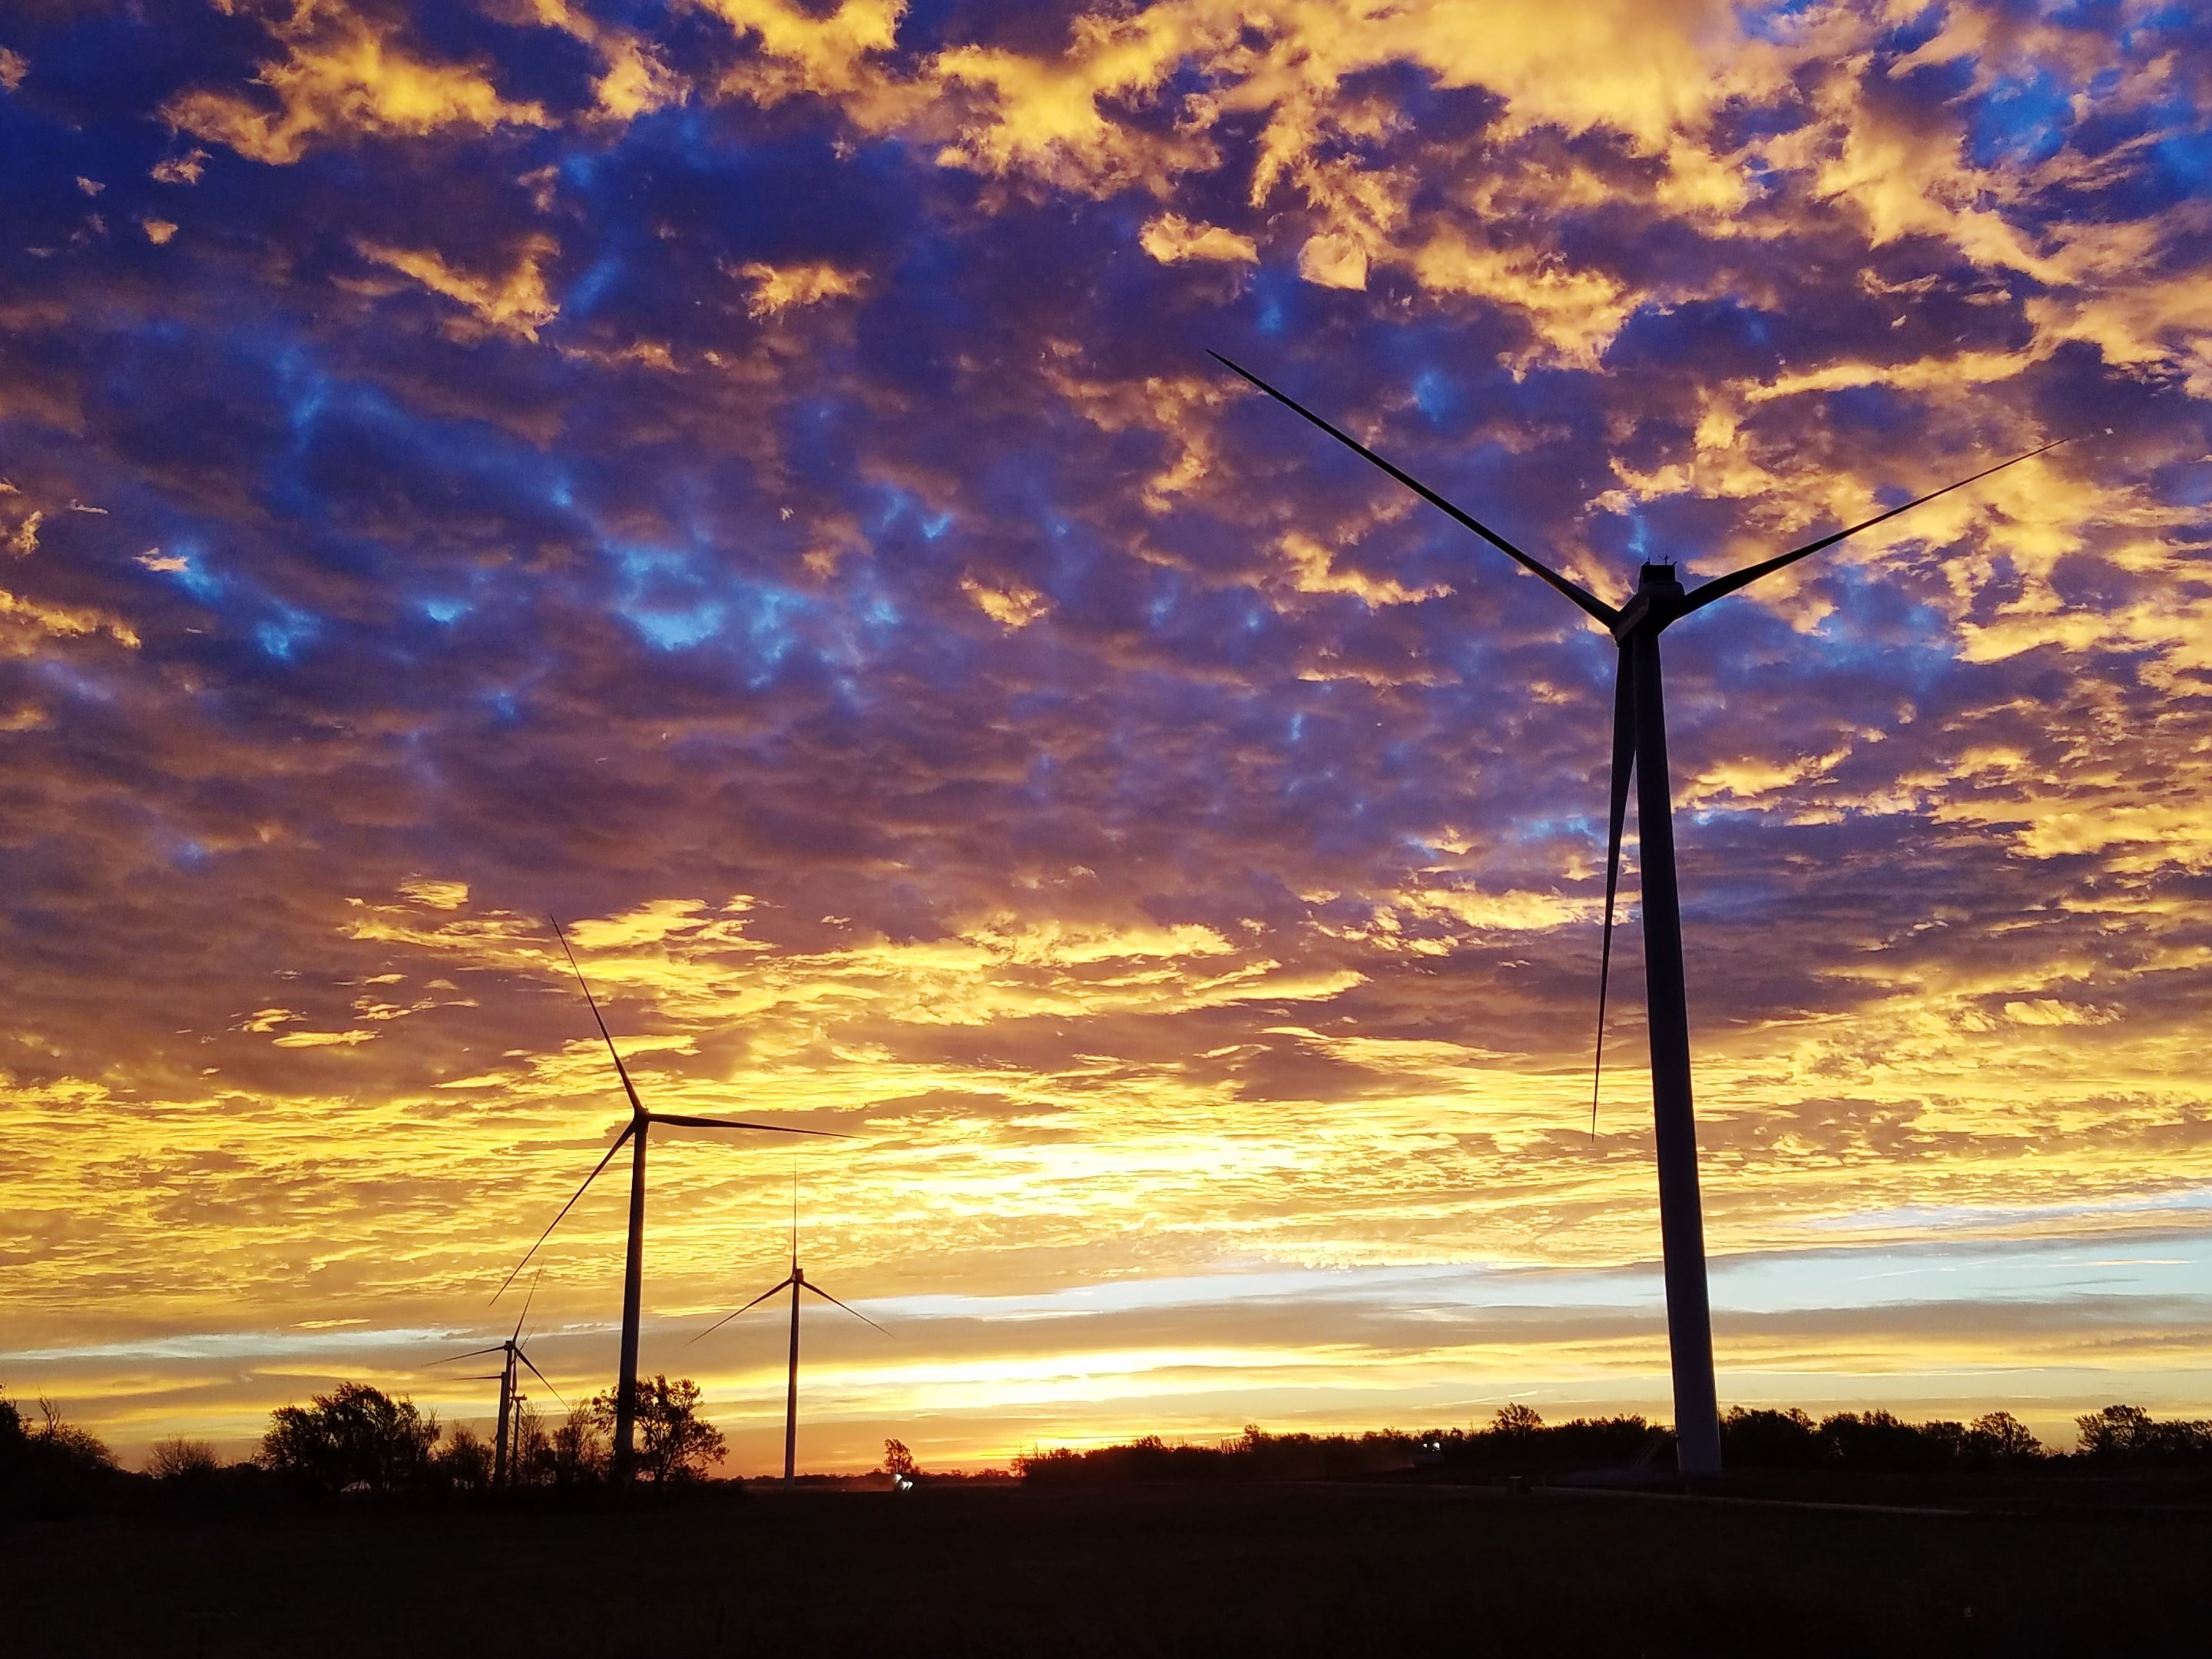 Sunset EDF RE Gains Investors For Oklahoma Wind Farm